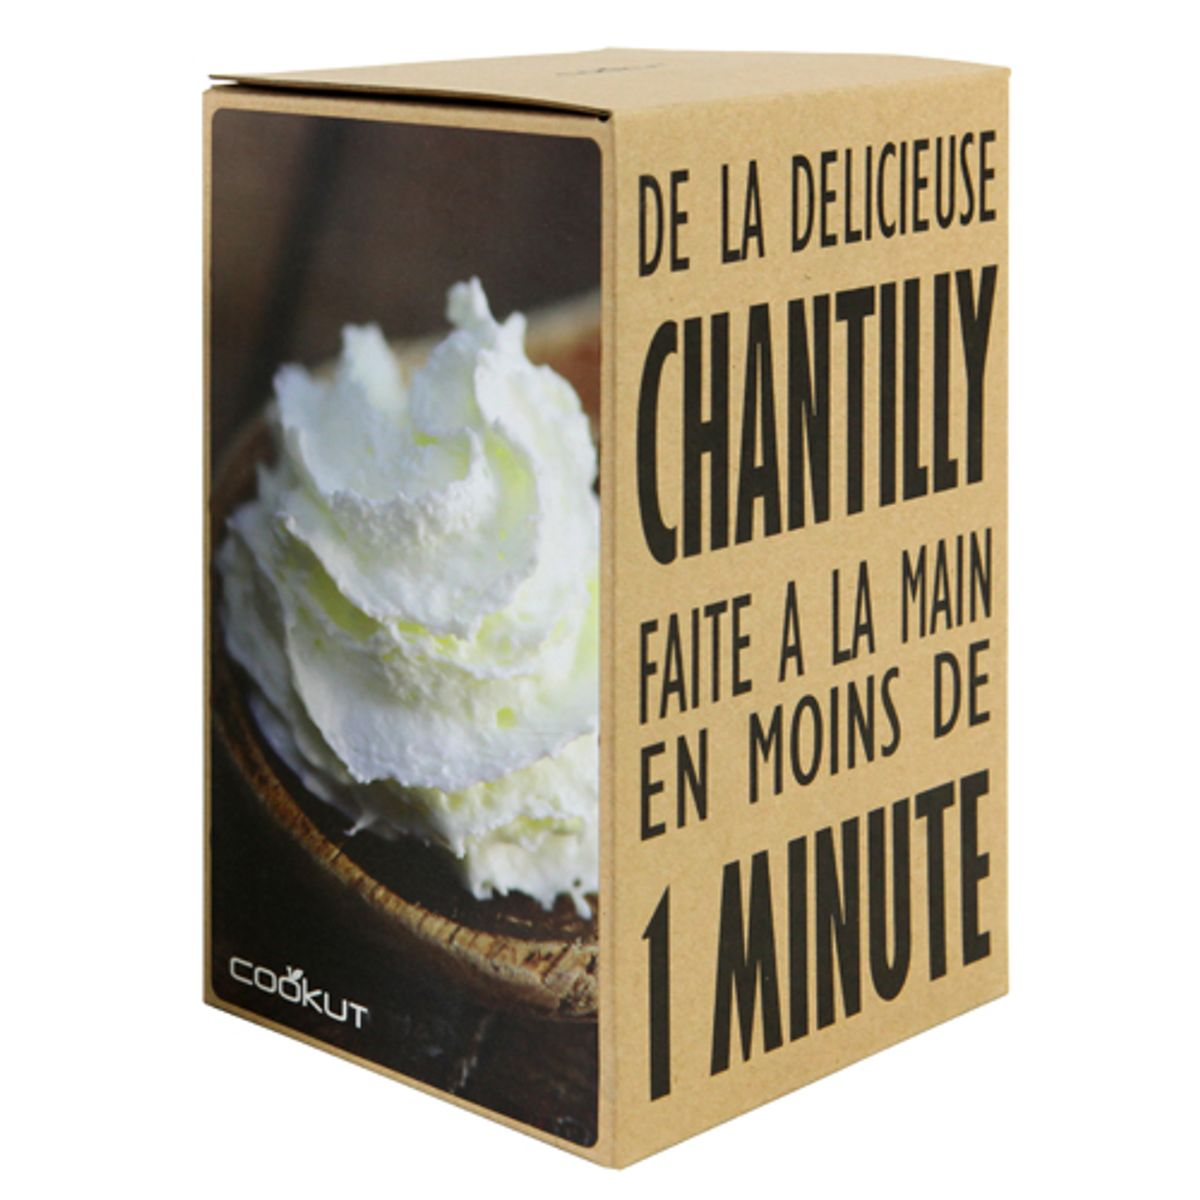 Shaker à Chantilly écologique en verre Homemade Creazy Cookut